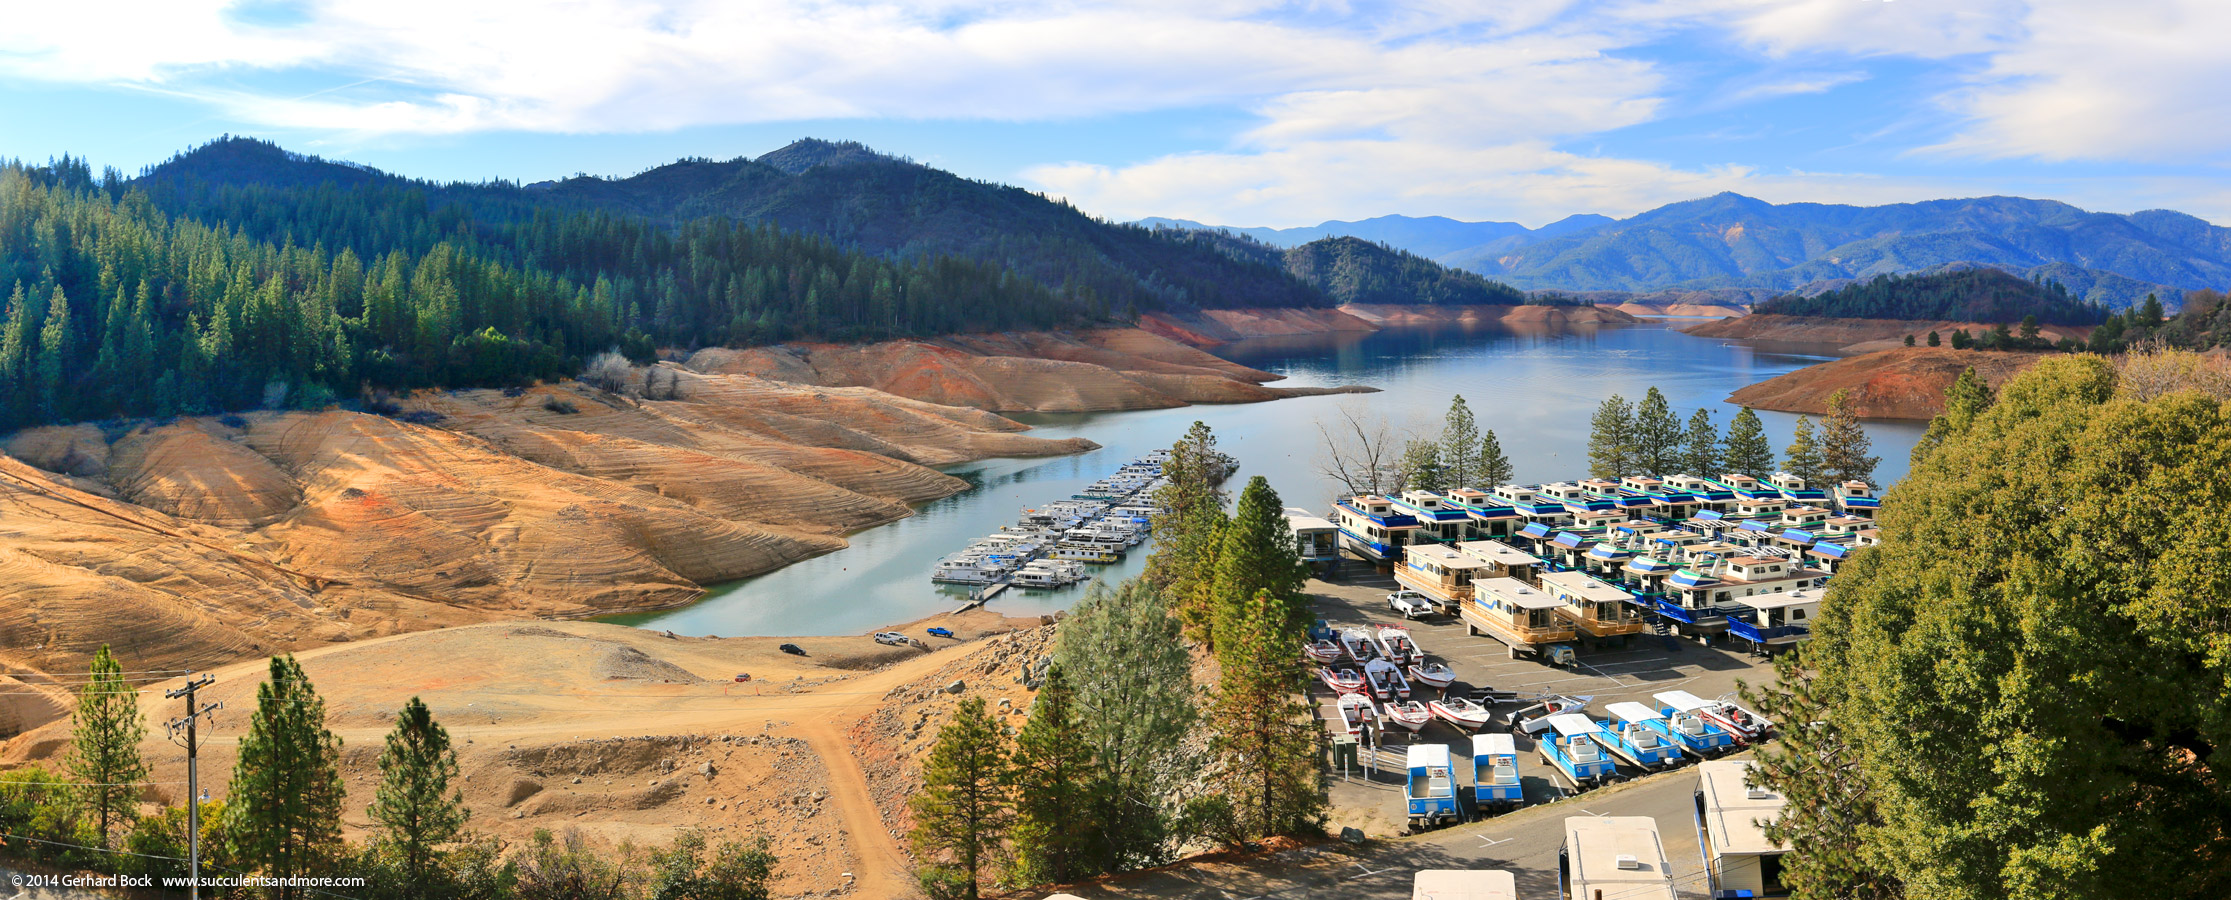 shasta lake Complete information on houseboat rentals at shasta lake in california.